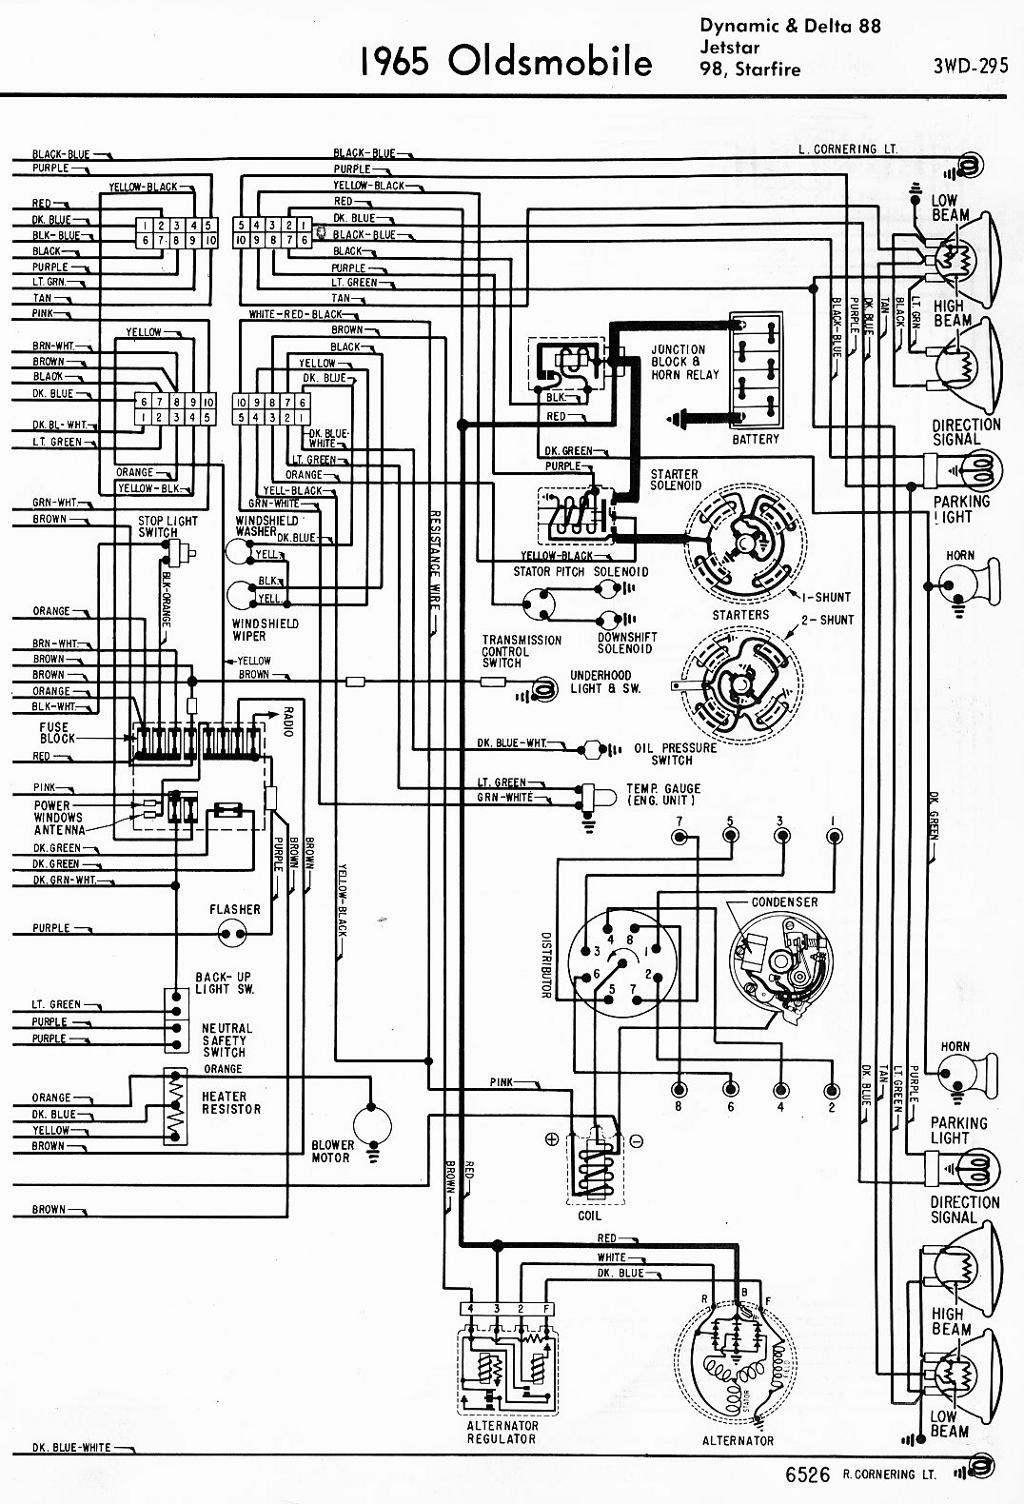 oldsmobile car manuals wiring diagrams pdf fault codes rh automotive manuals net 2000 Oldsmobile Intrigue Engine Diagram 2000 Oldsmobile Intrigue Engine Diagram